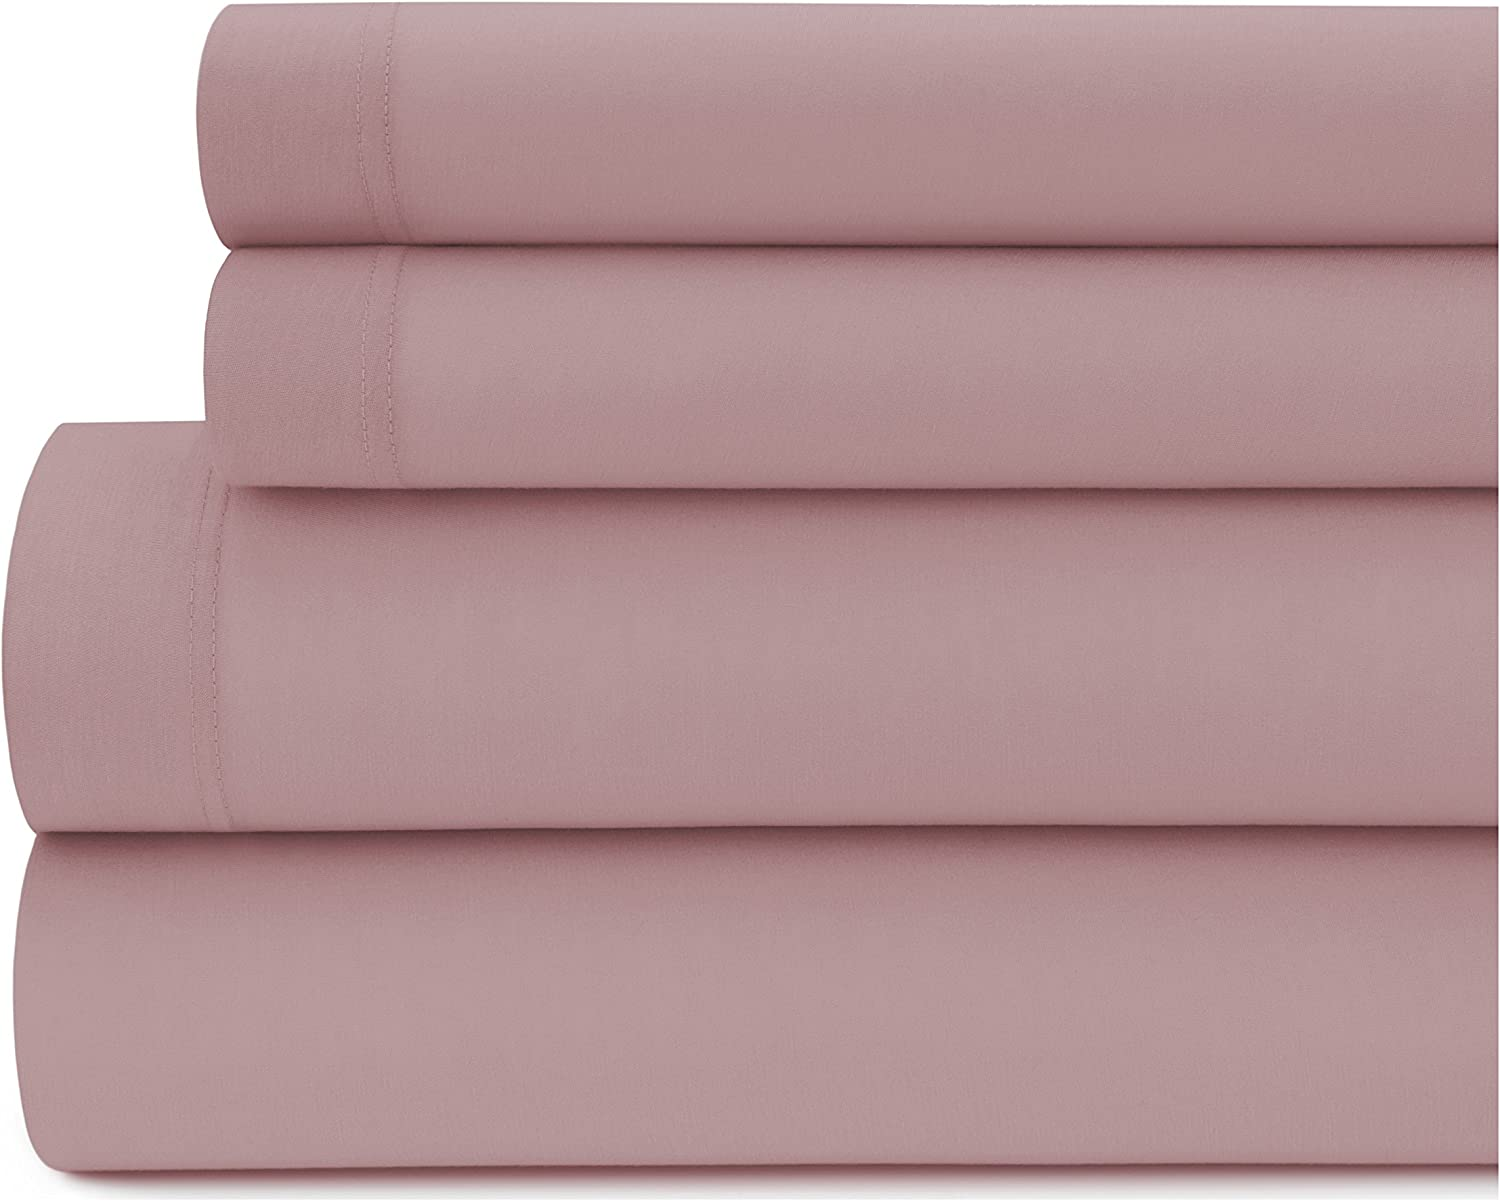 Briarwood Home Luxurious Jersey Bed Sheet Set – 100% Modal Sheets   Heavy Weight, Super Soft 4-Piece Bed Sheet Set – Deep Pocket, Solid colors, Cool, Wrinkle Free & Breathable Sheets (King, pink)